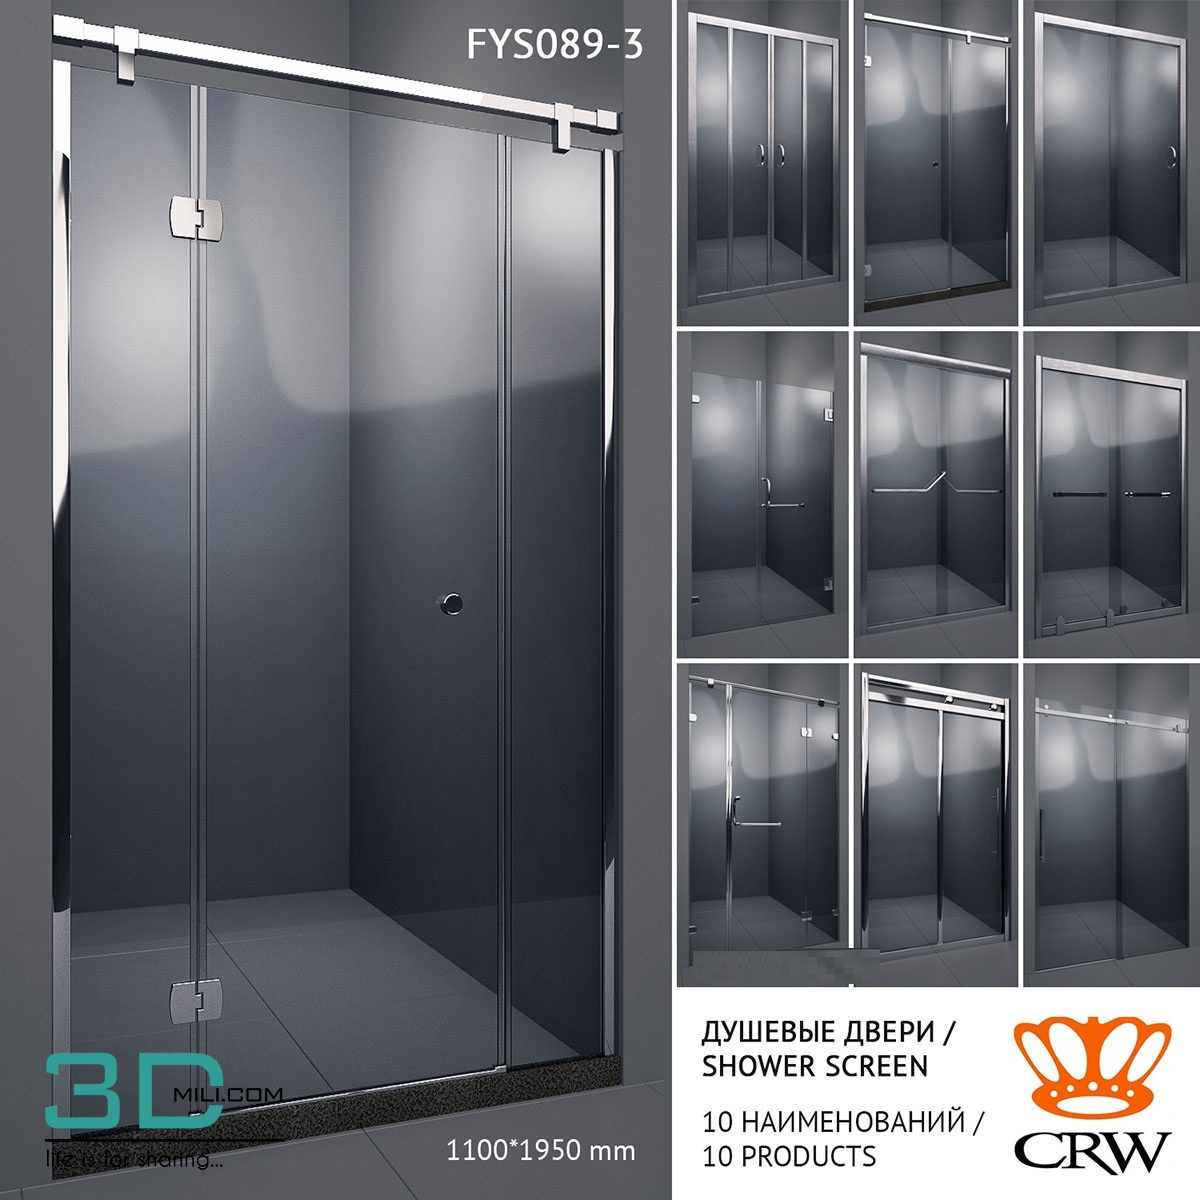 Glass Shower Wall 3dsmax Model Free Download